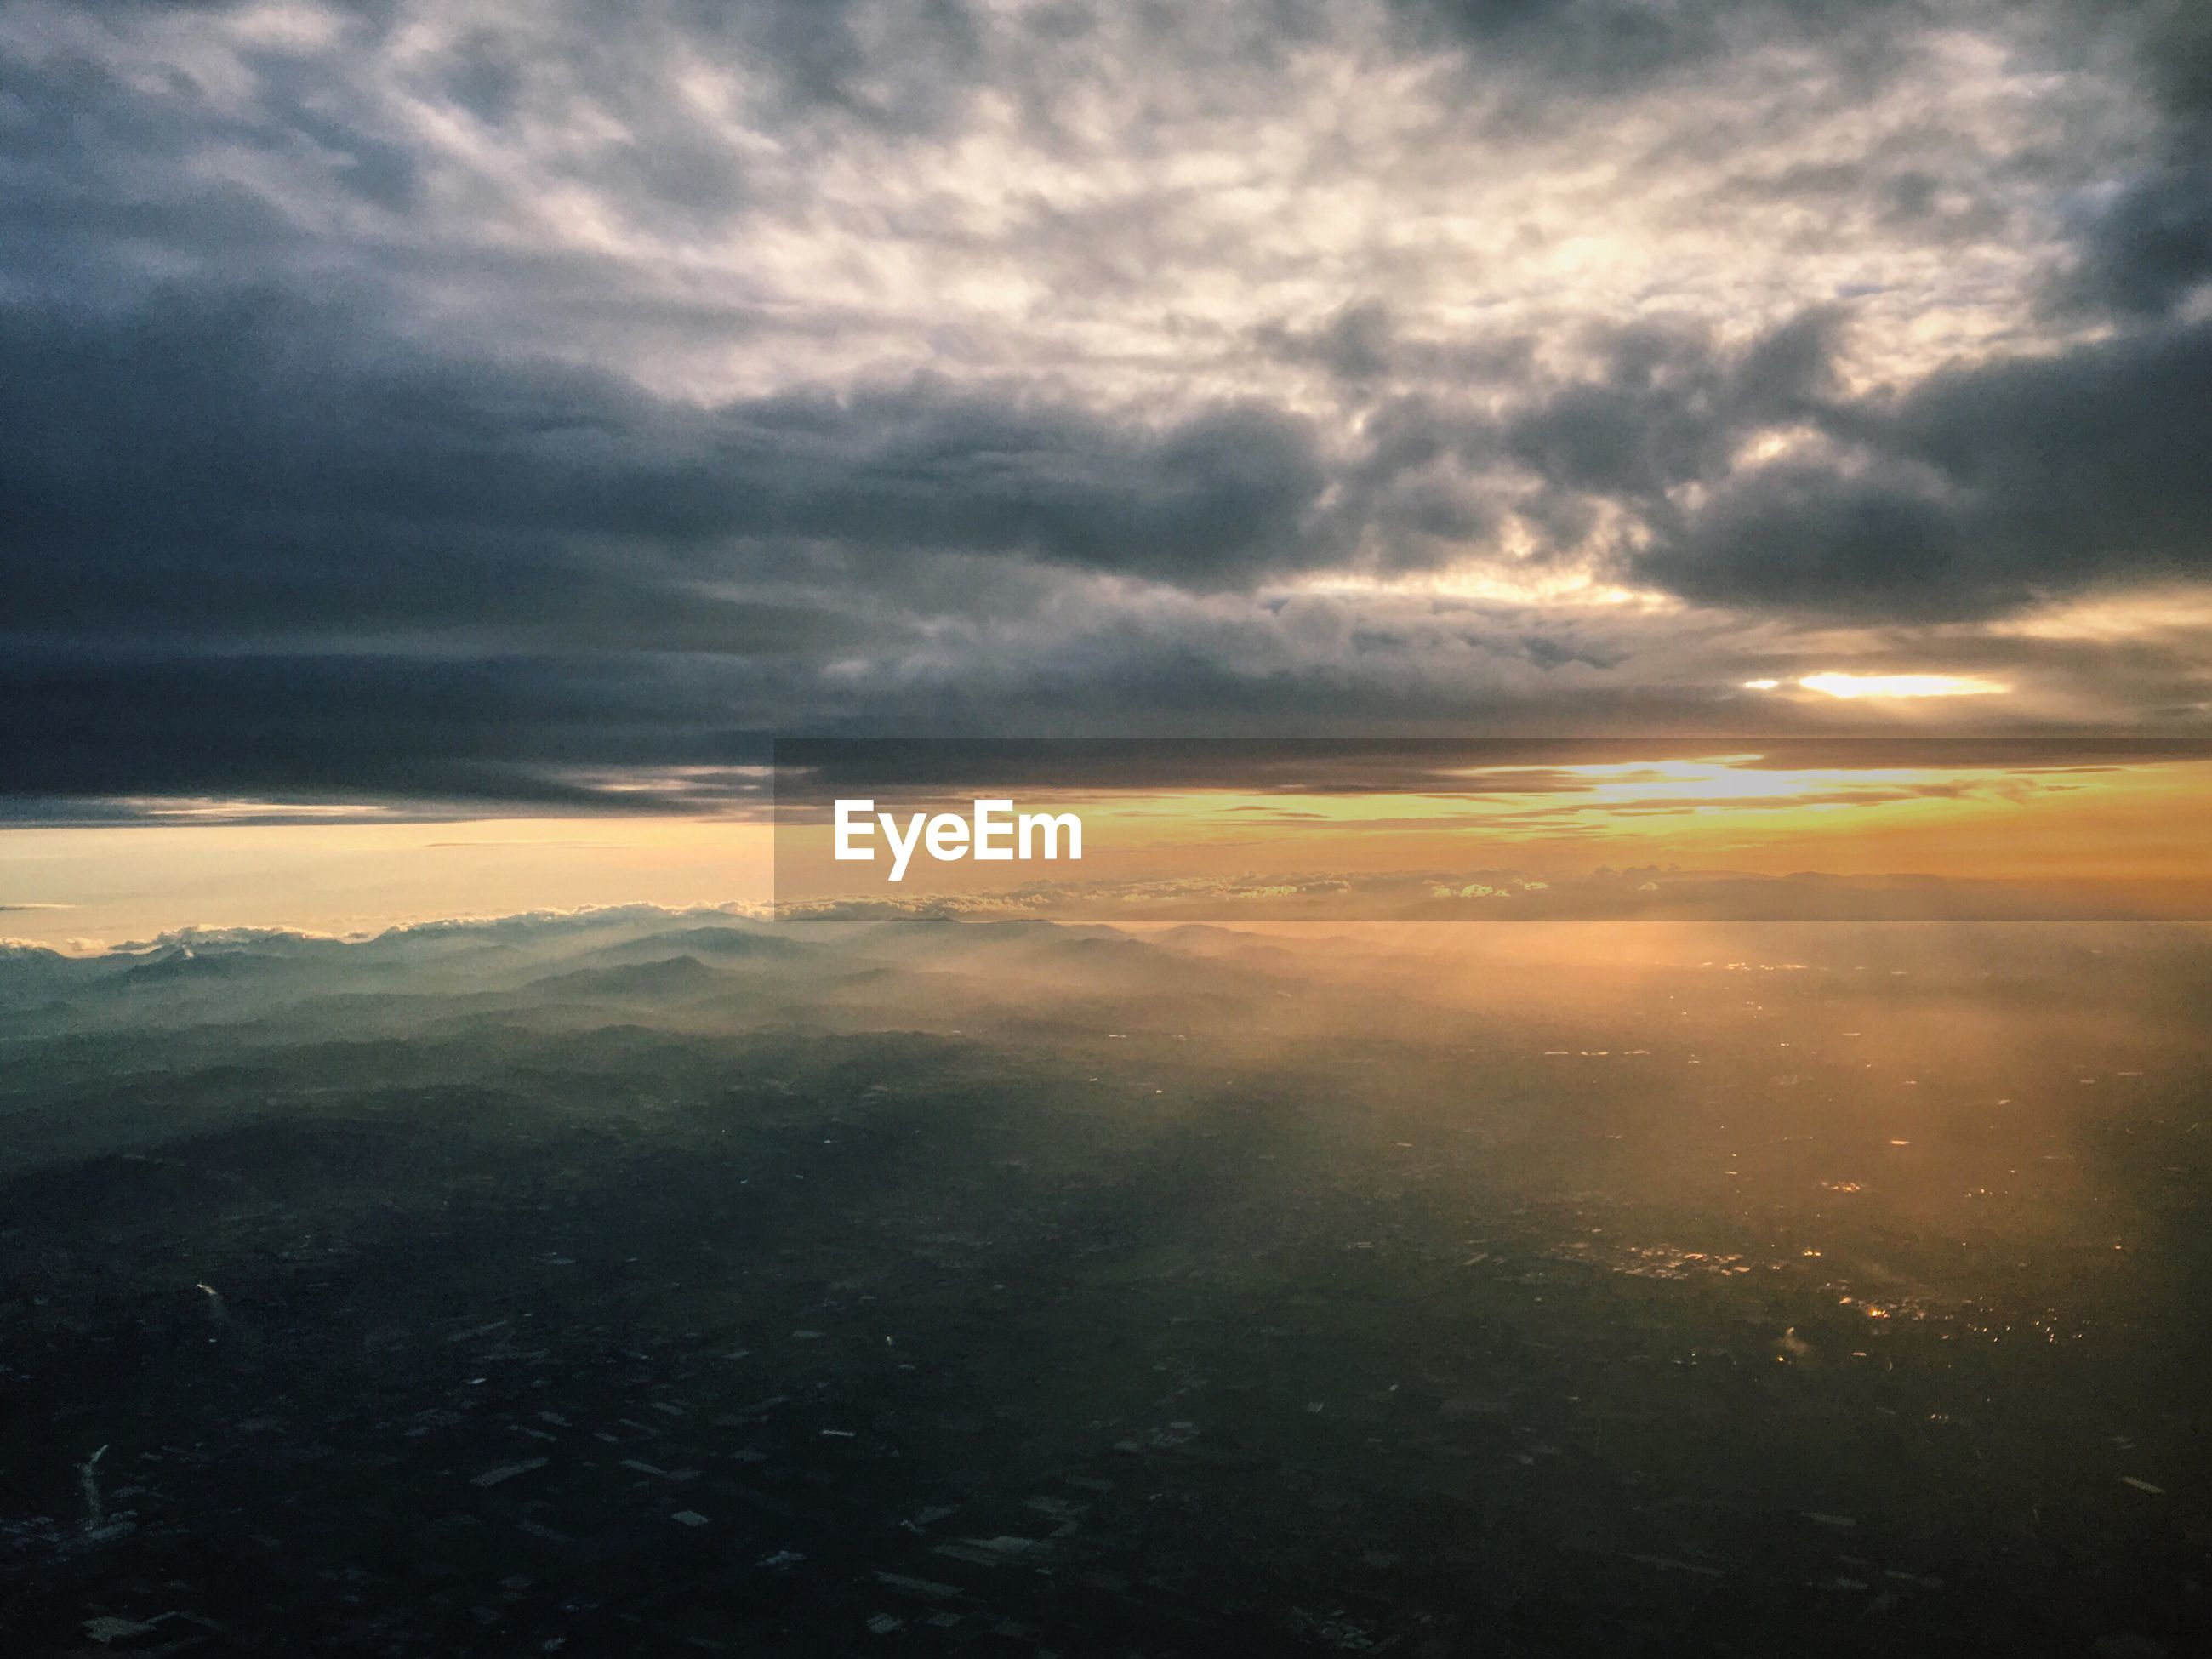 AERIAL VIEW OF CLOUDY SKY OVER MOUNTAINS